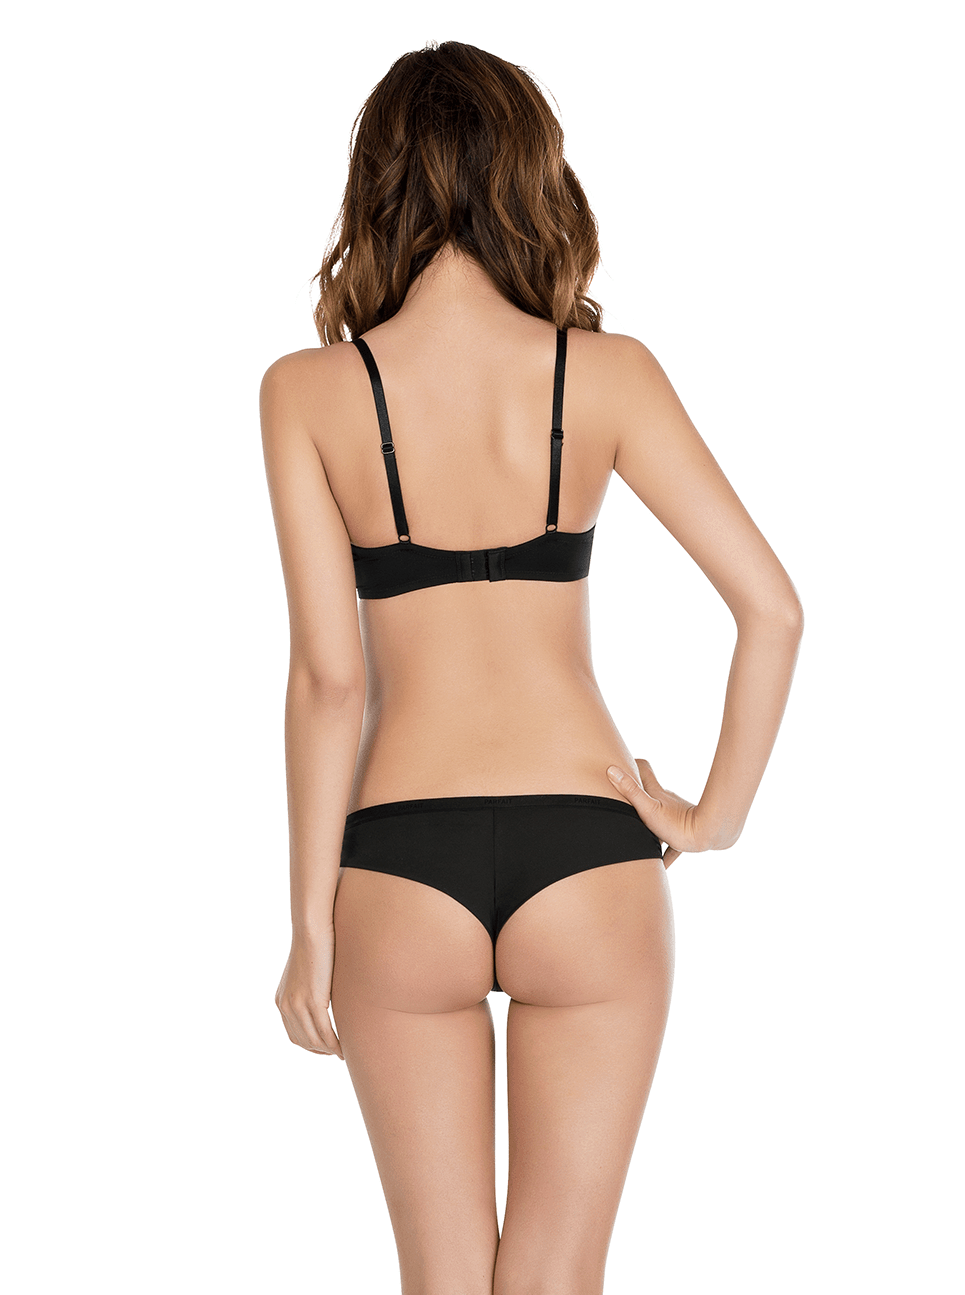 Lynn TshirtBraP13011 BrazilianThongP13014 Black Back - Lynn T-Shirt Bra - Black - P13011